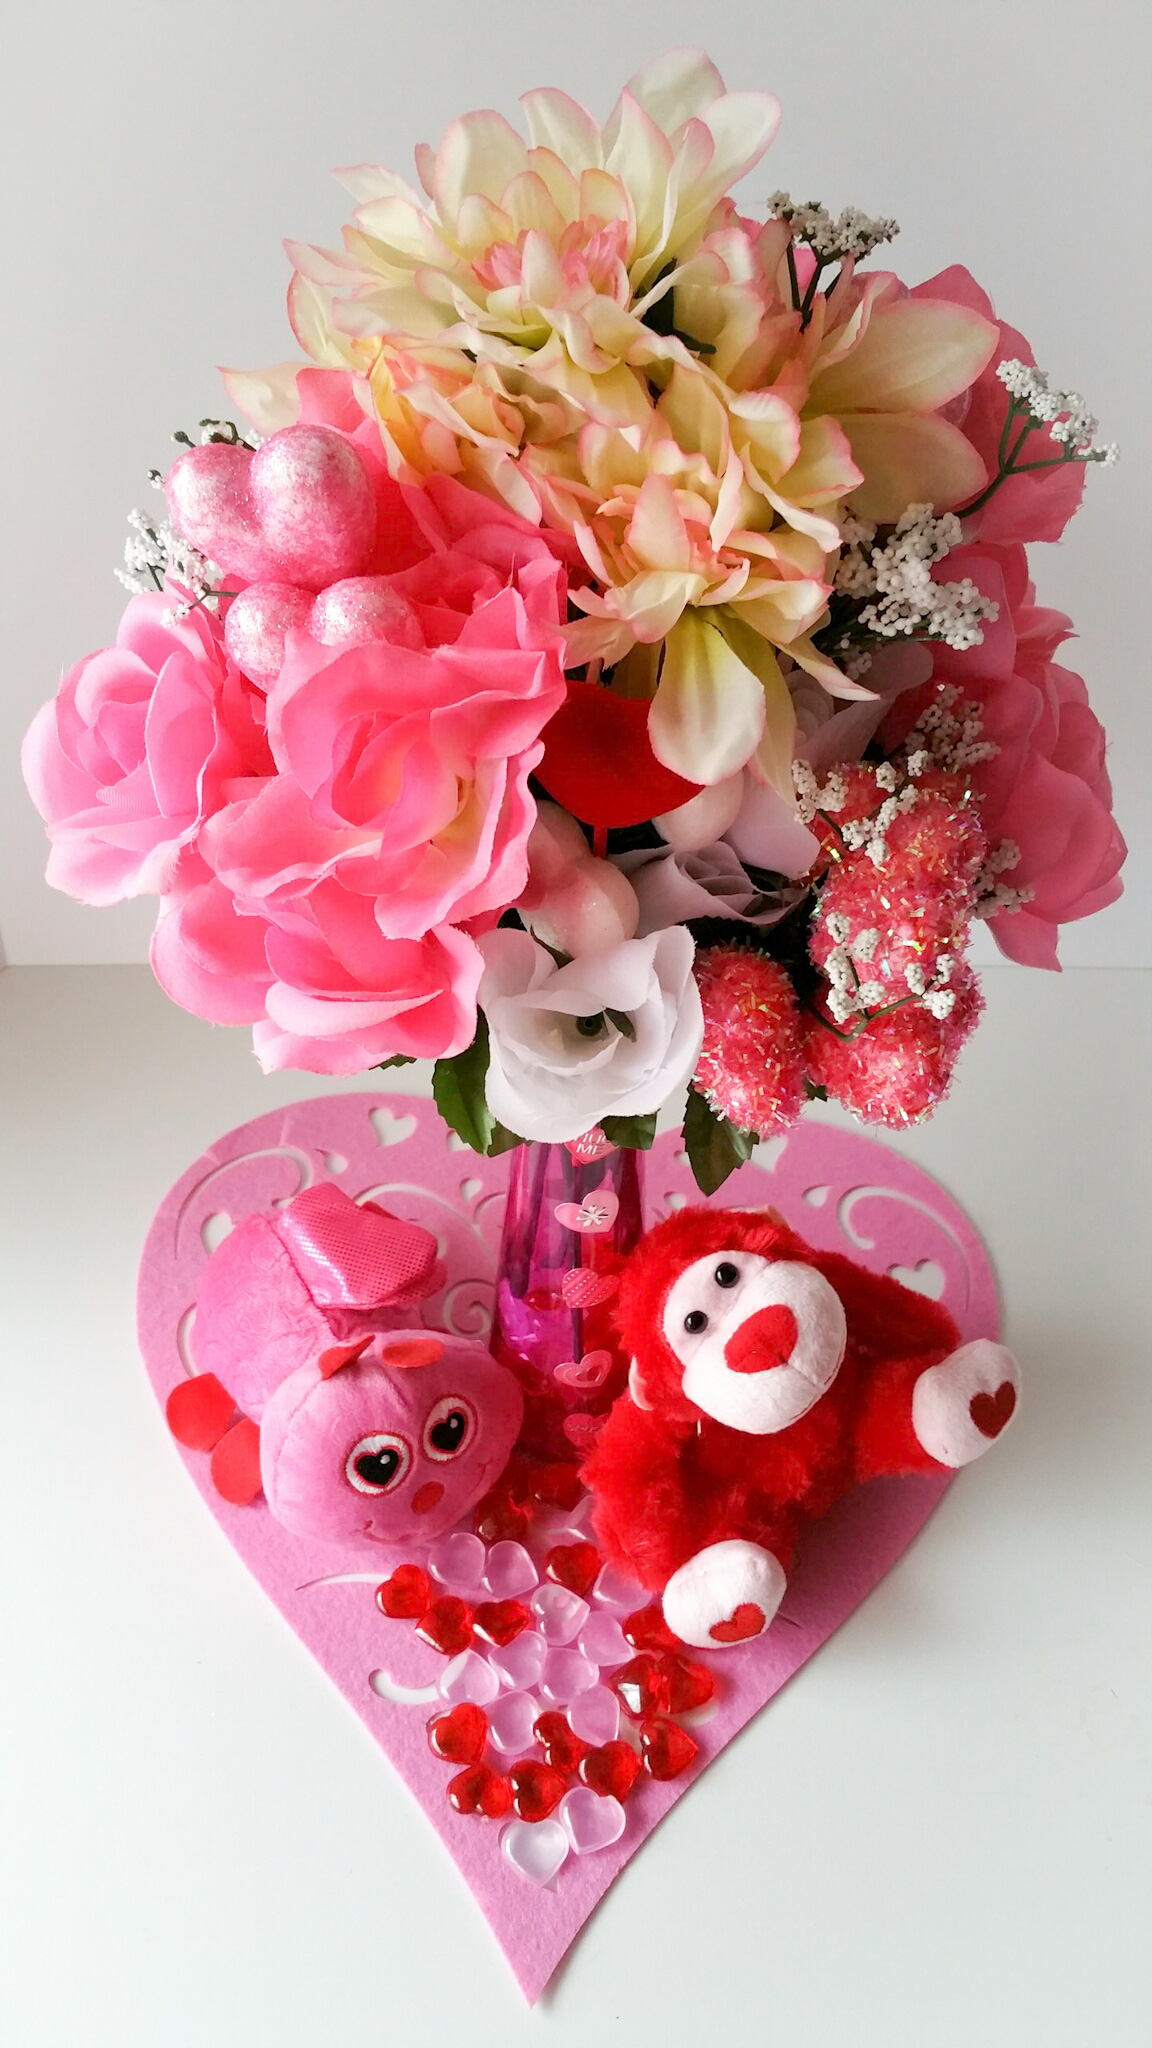 Super-Cute-DIY-Heart-Vase-Bouquet-Seven-LiWBF